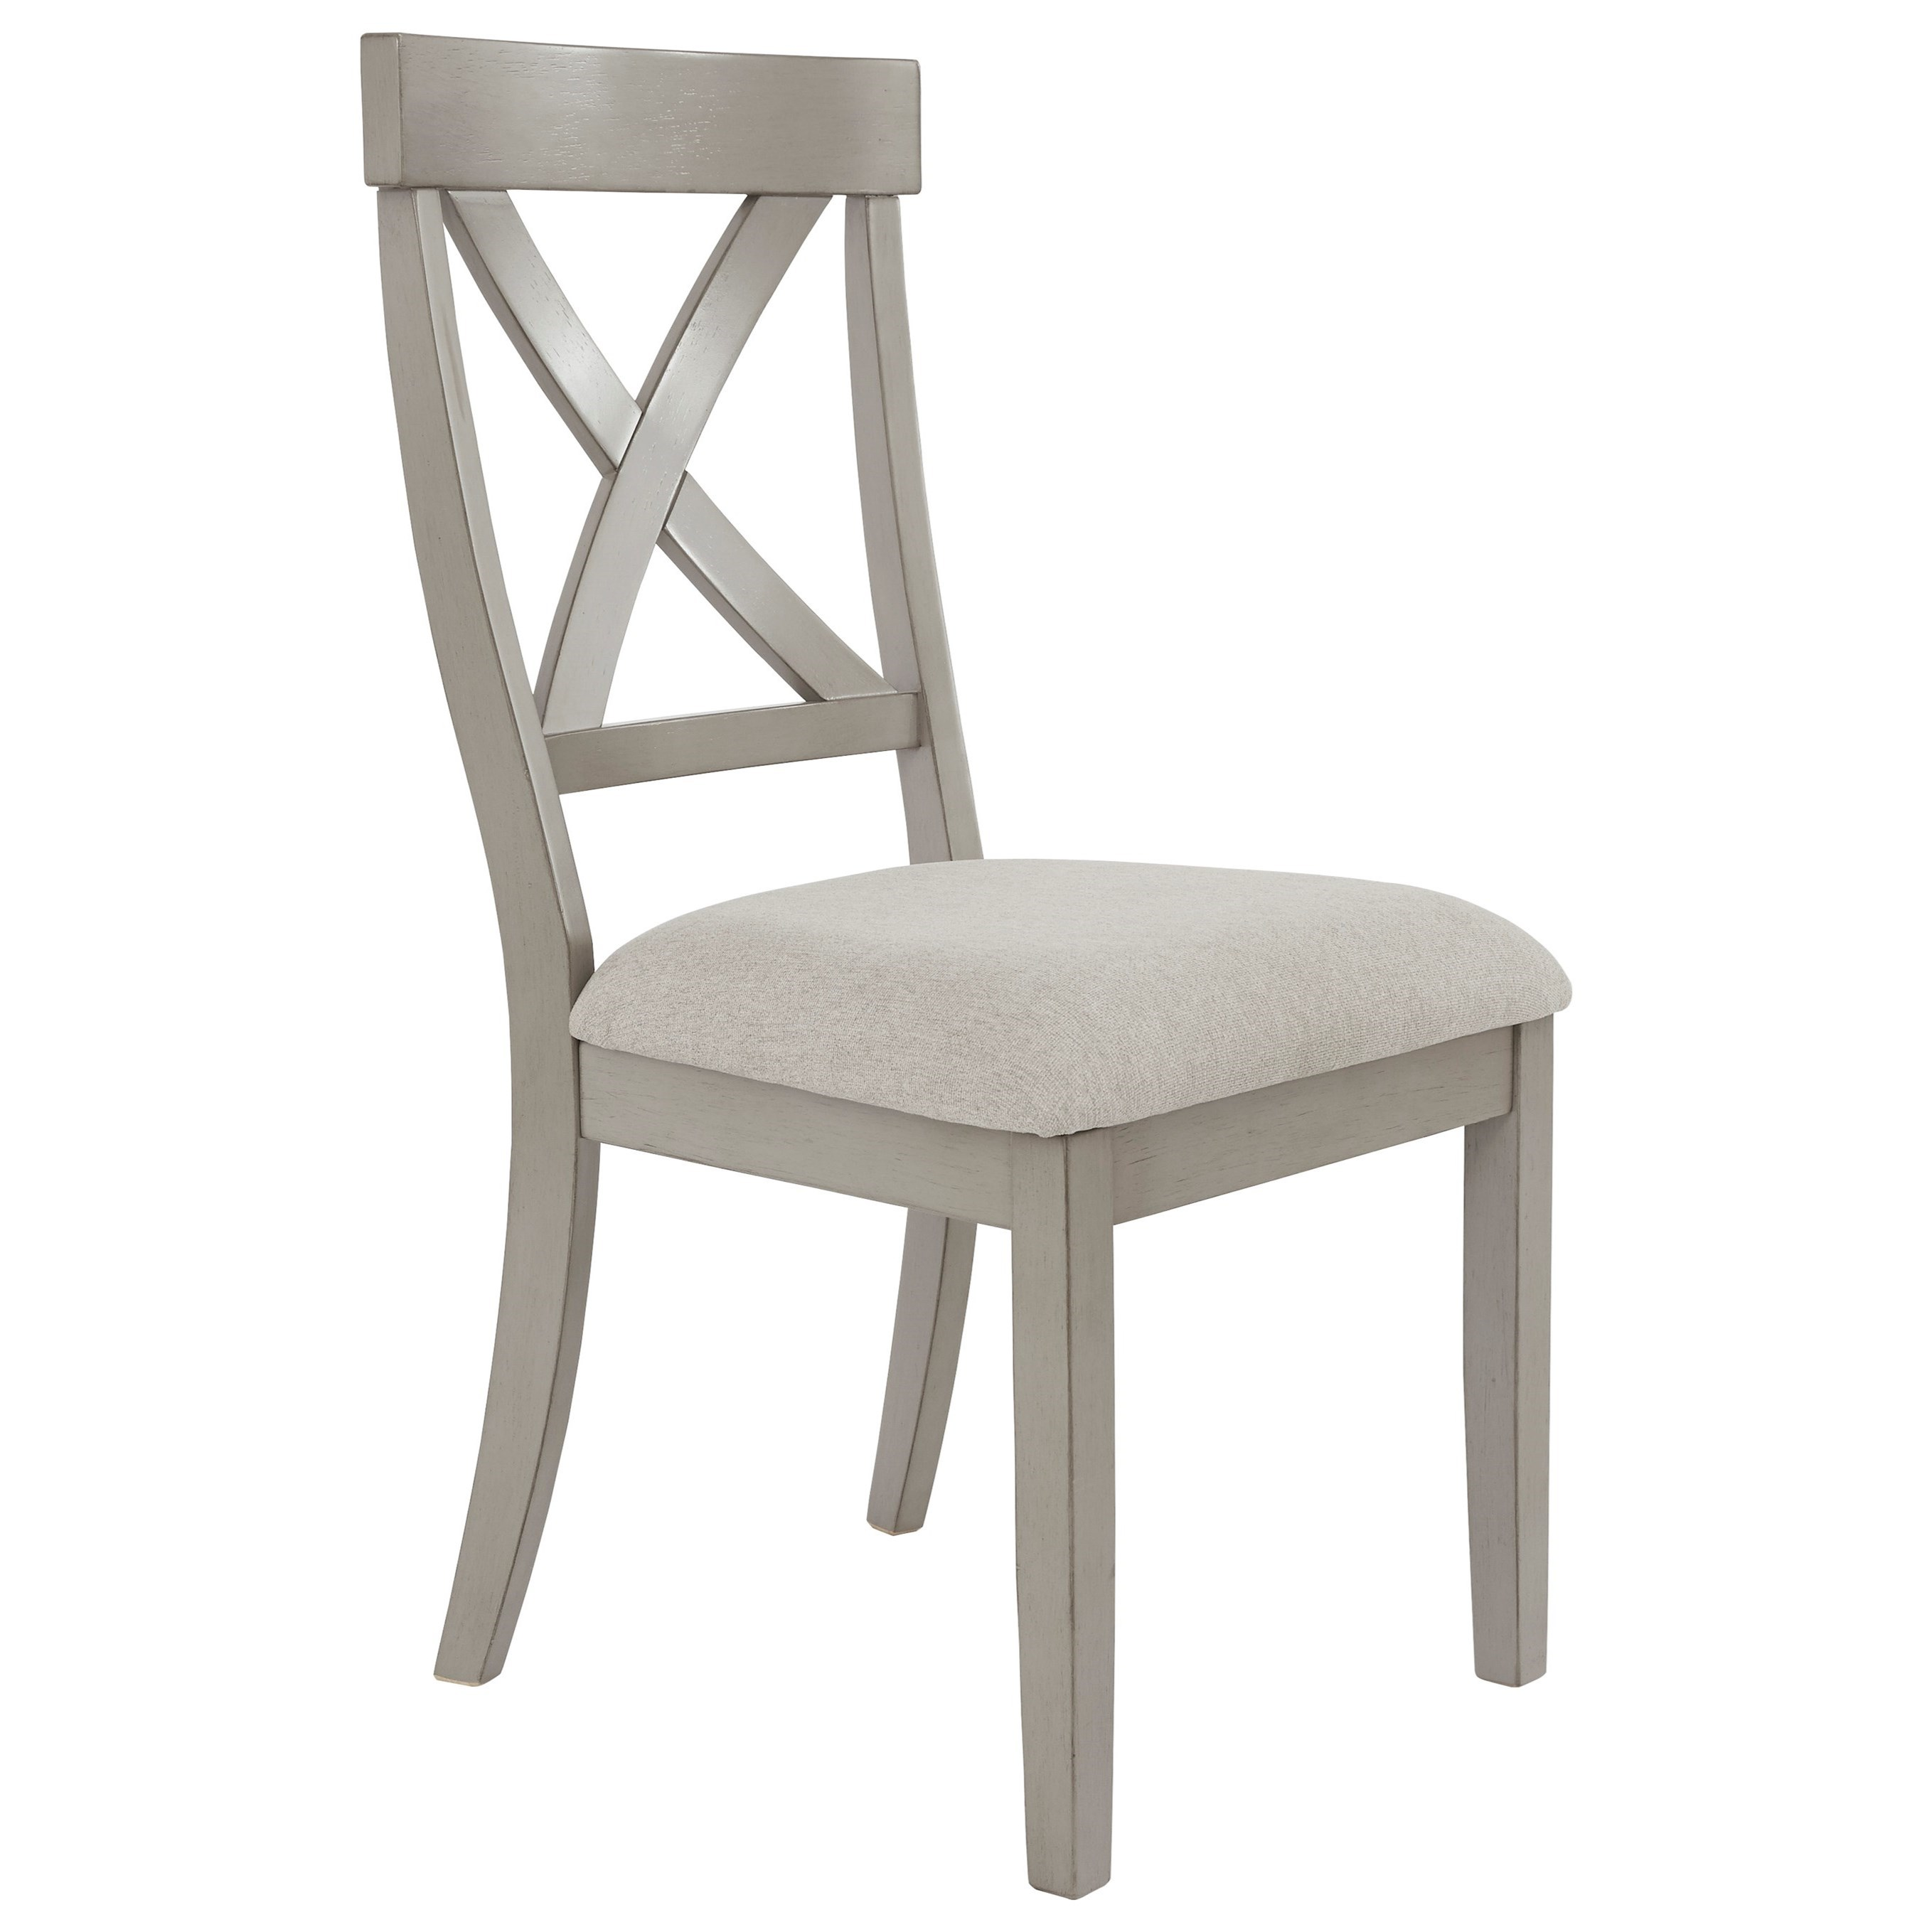 Signature Design By Ashley Parellen Casual Dining Side Chair With Upholstered Seat Value City Furniture Dining Side Chairs